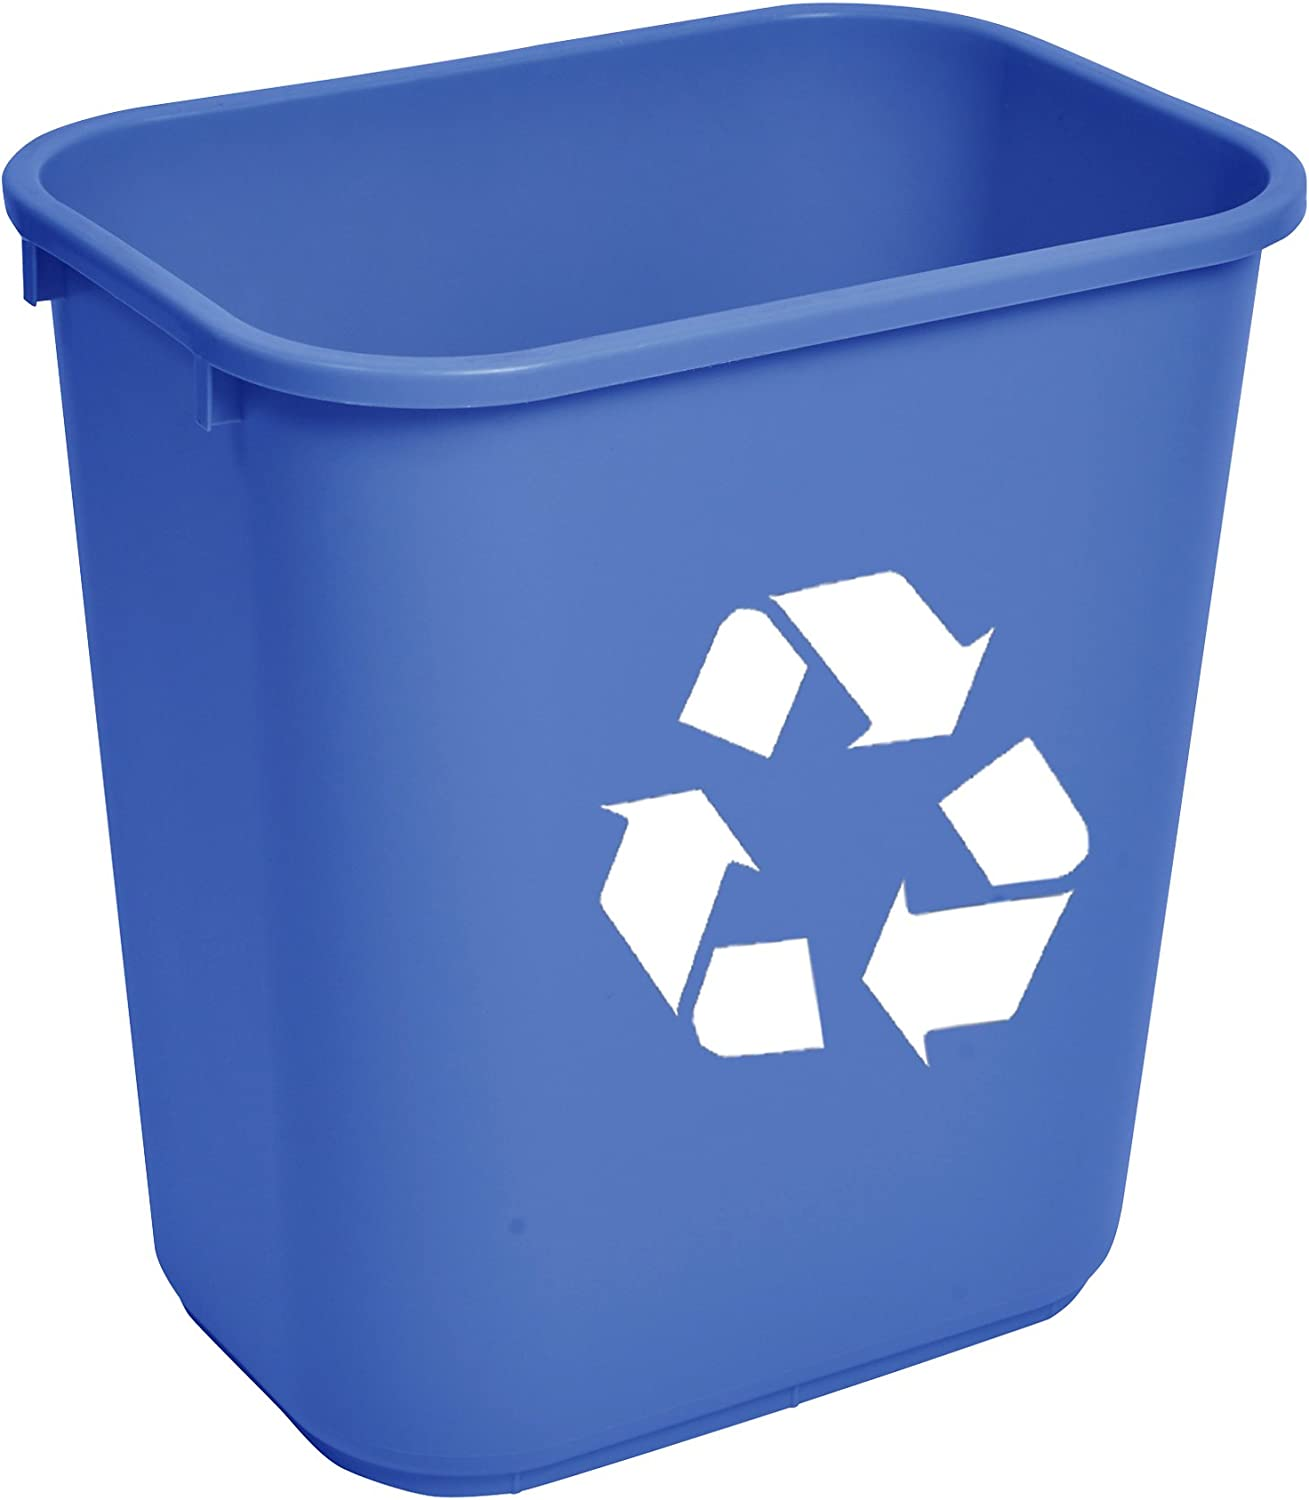 Janico 1037BL-12 41 Qt Rectangular Wastebasket, Recycle Can, bluee (Pack of 12)